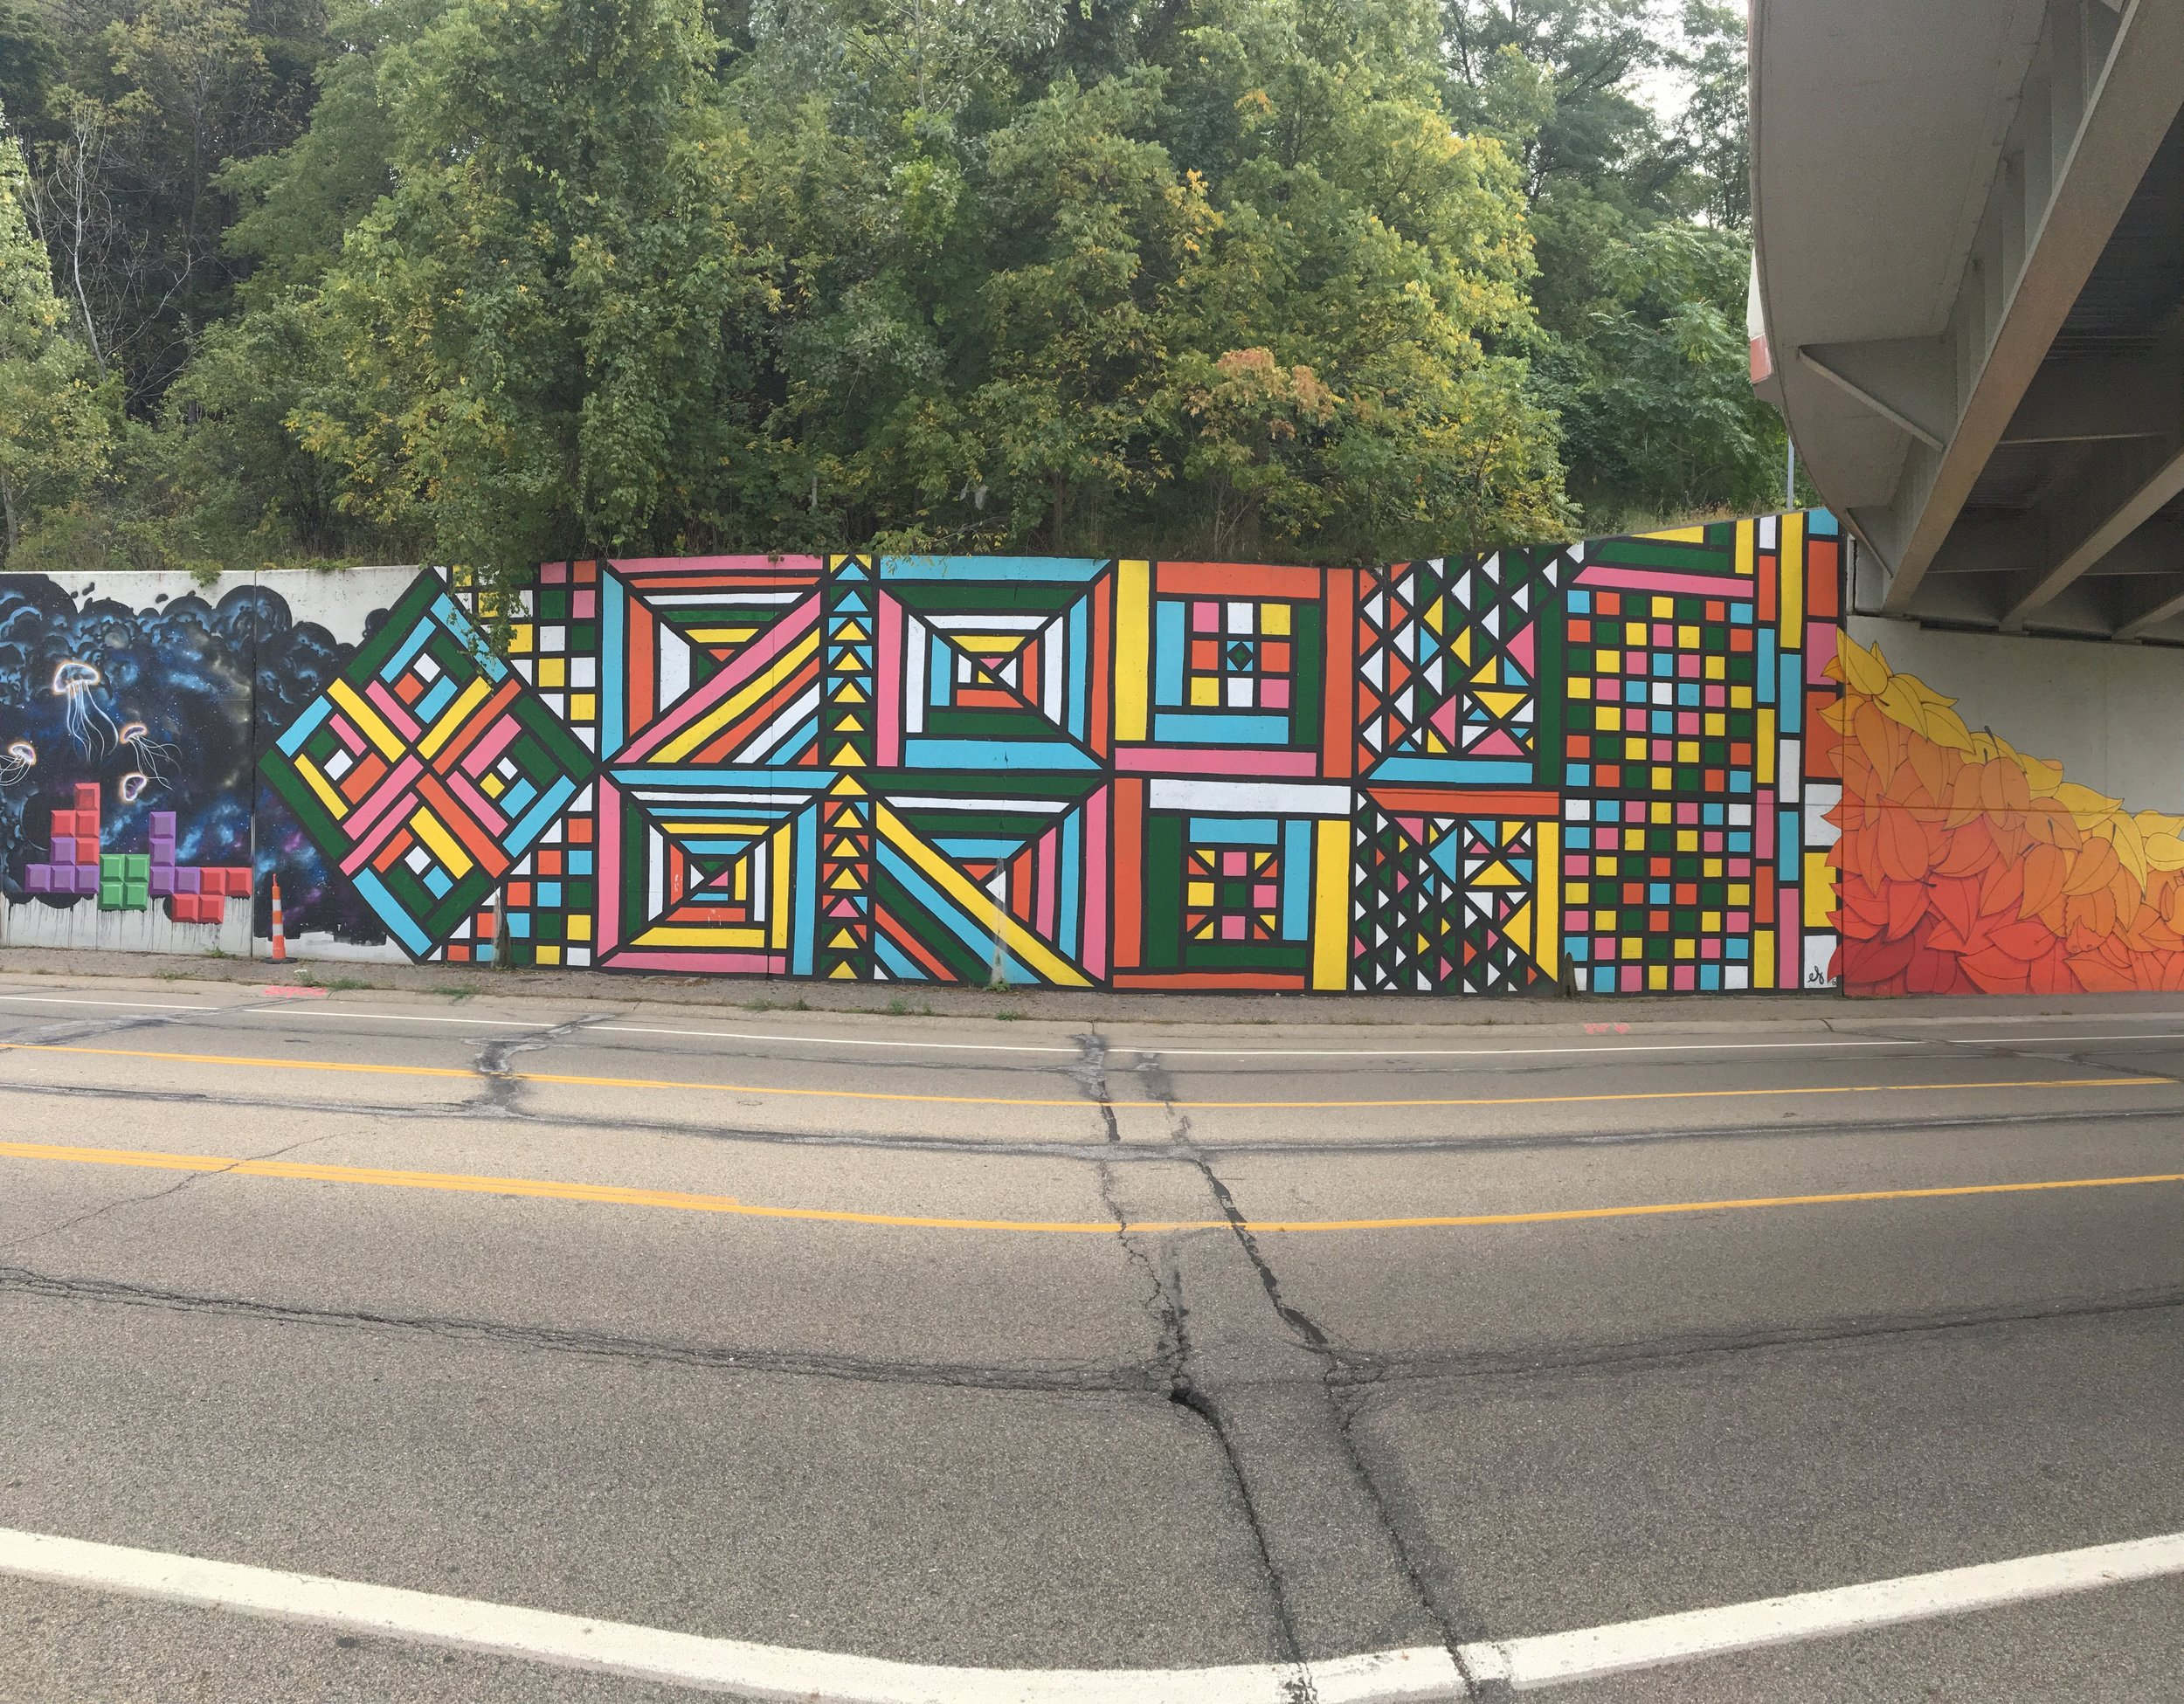 Geometric quilt mural on retaining wall of I-196 (full view)